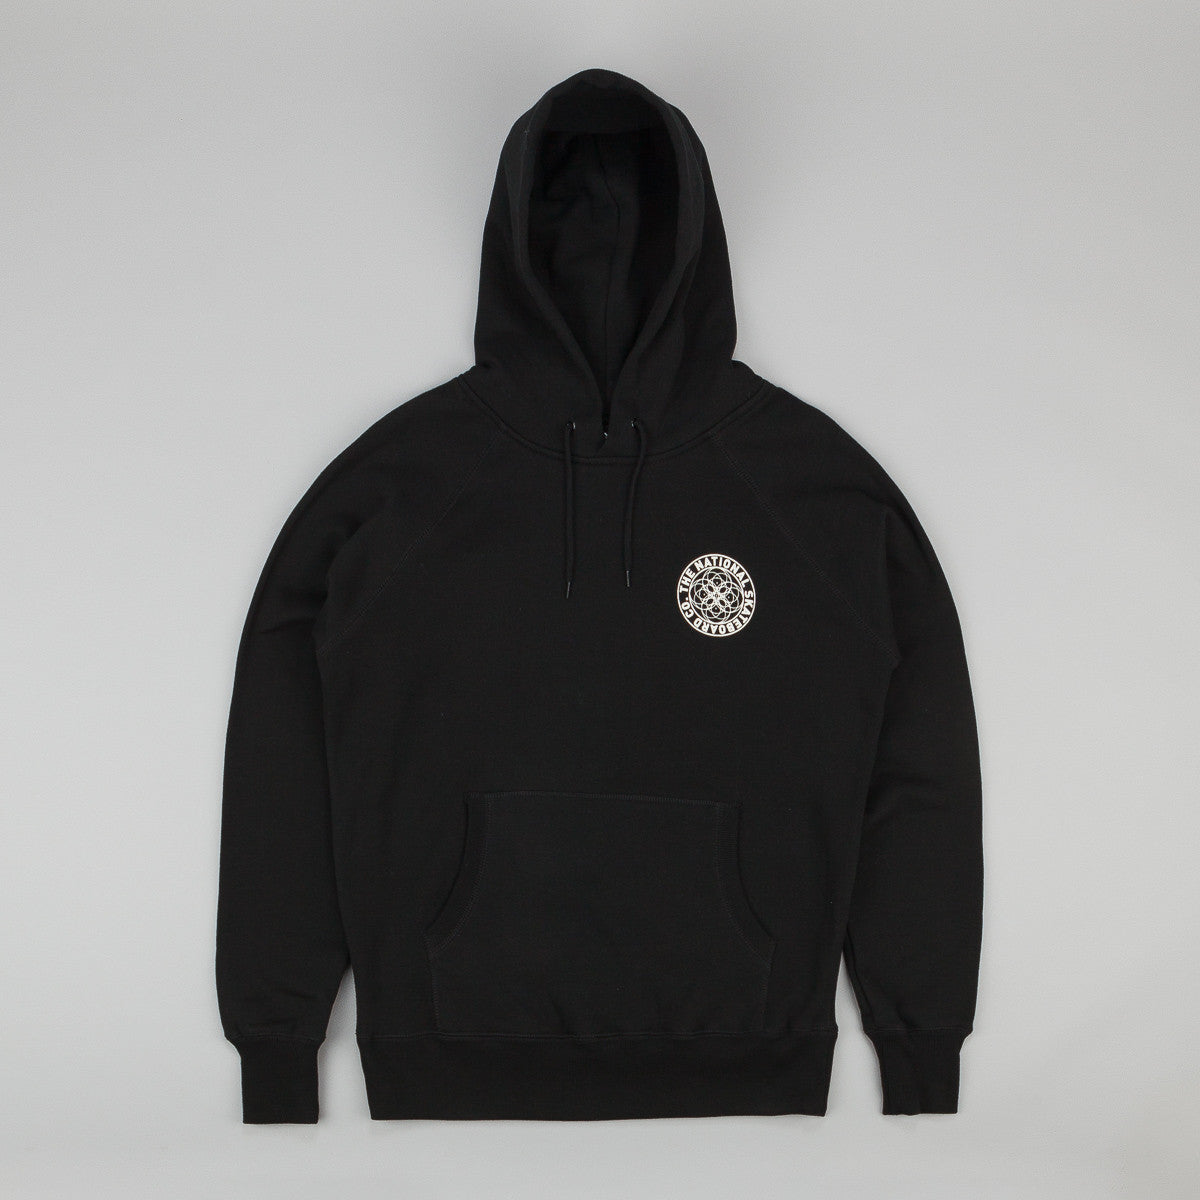 The National Skateboard Co Universal Hooded Sweatshirt - Black